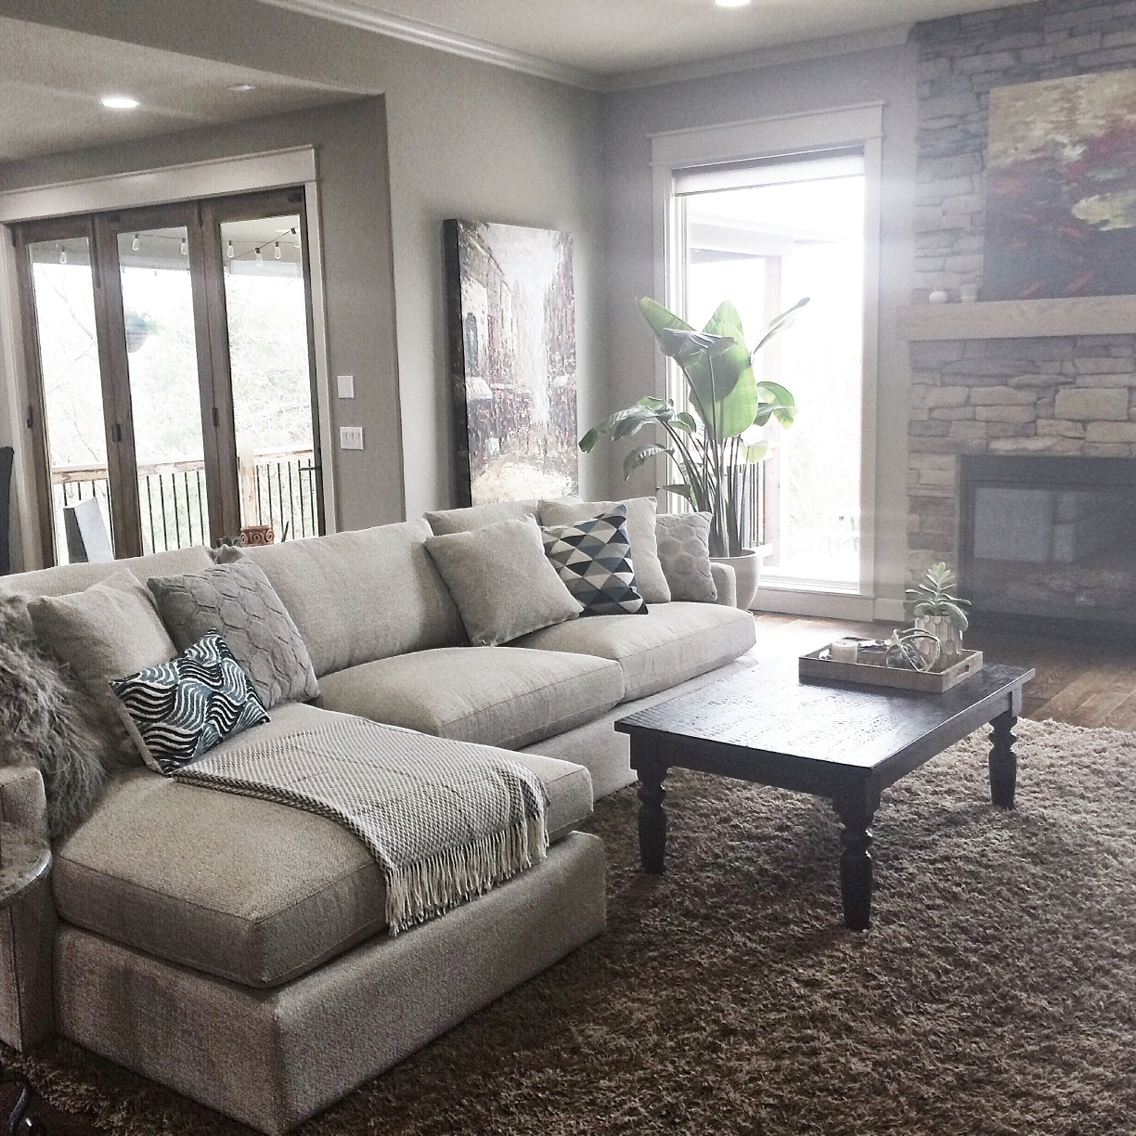 Latest Pottery Barn Table Lamps For Living Room With Regard To Engaging Pottery Barn Living Room Paint Ideas Images Furniture (View 16 of 20)